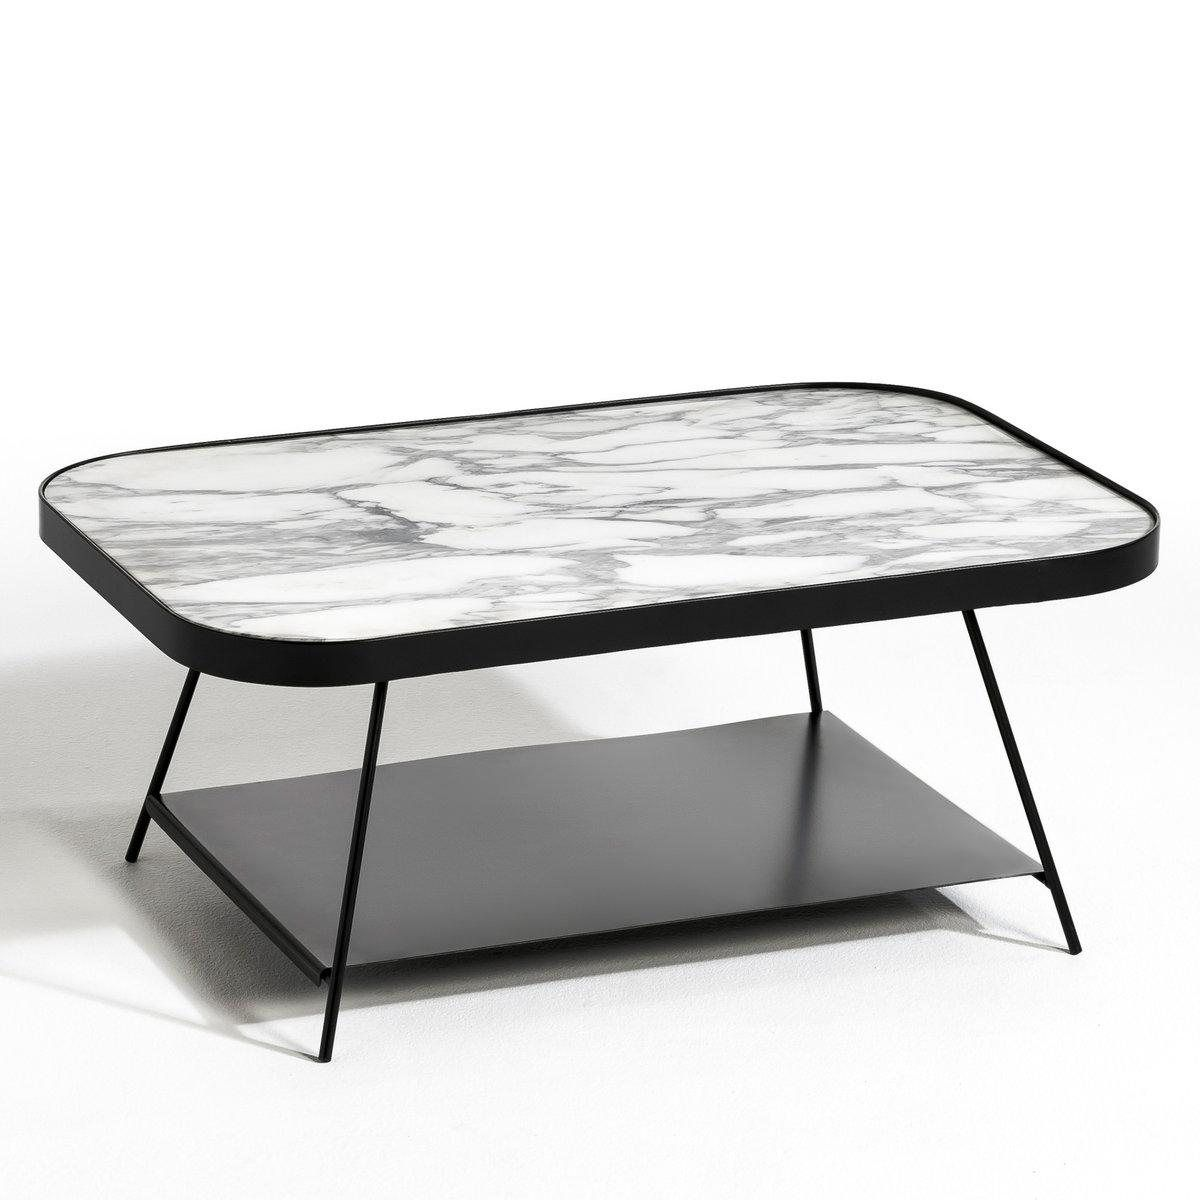 Table Marbre Ampm Table Basse Marbre Gemma Design E Gallina Tables Basses